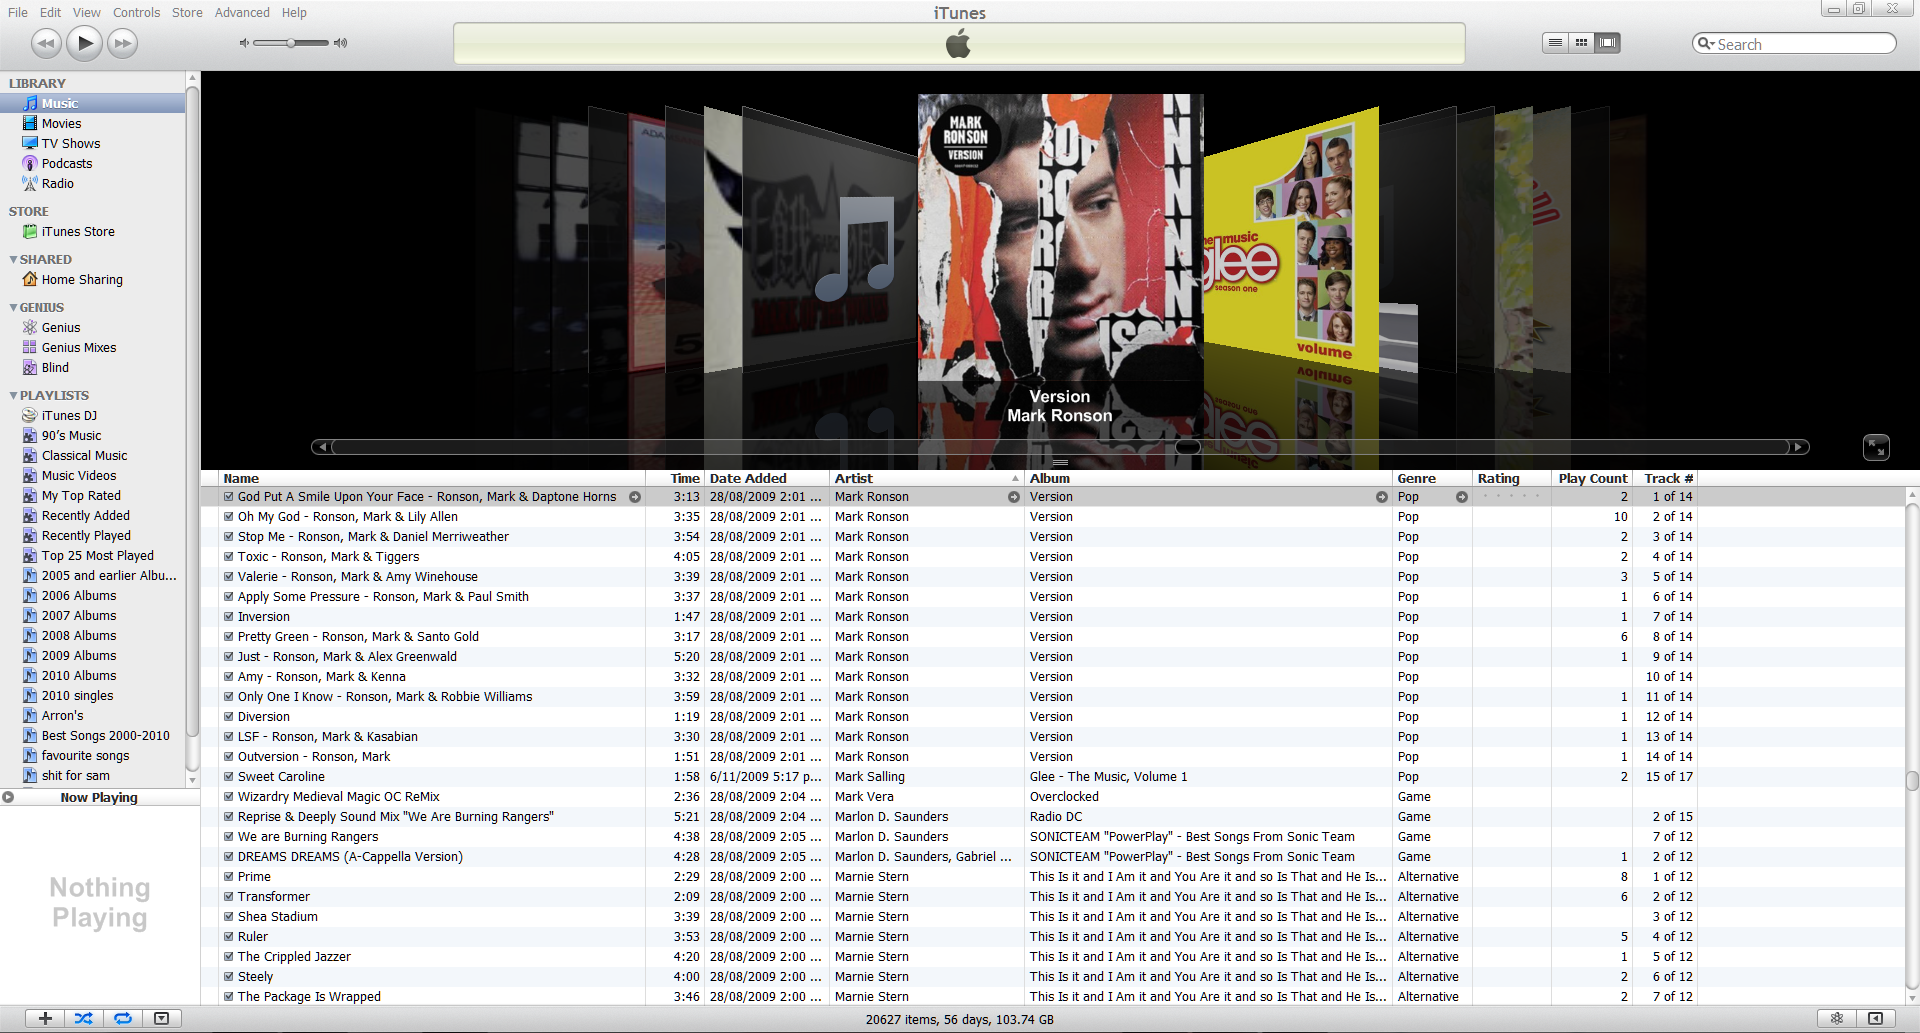 iTunes Interface